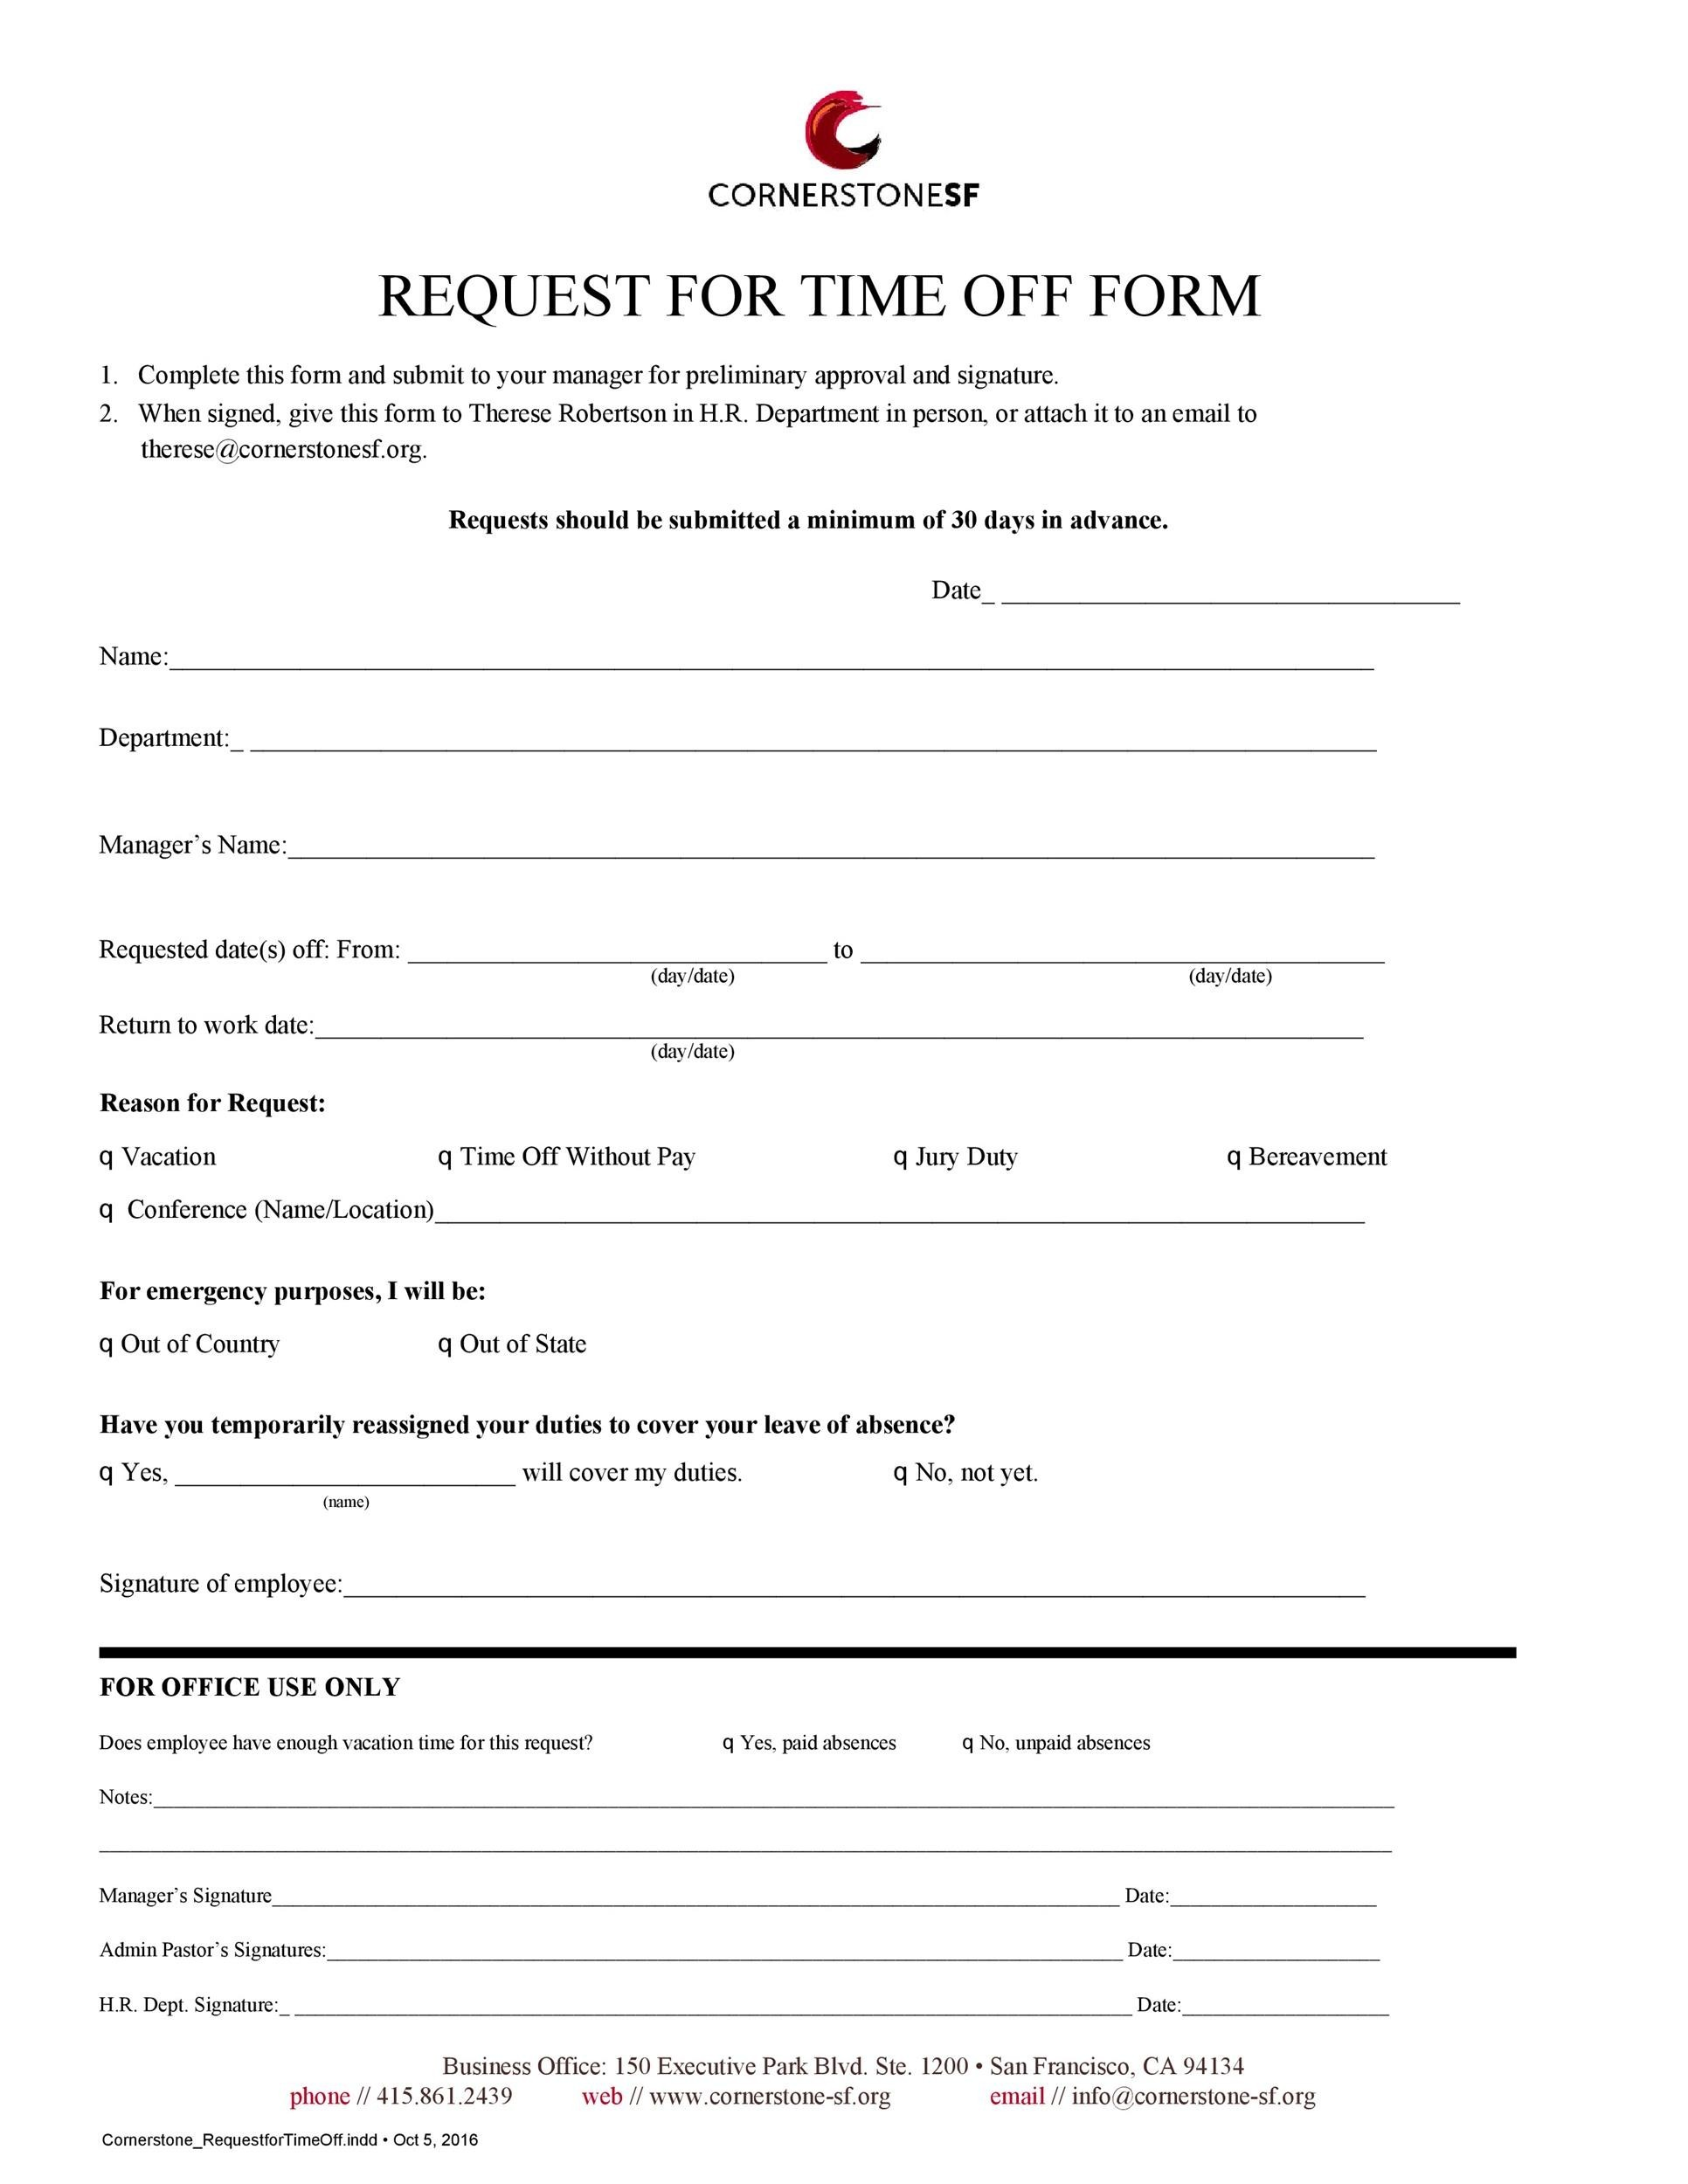 génial Free time off request form template 38